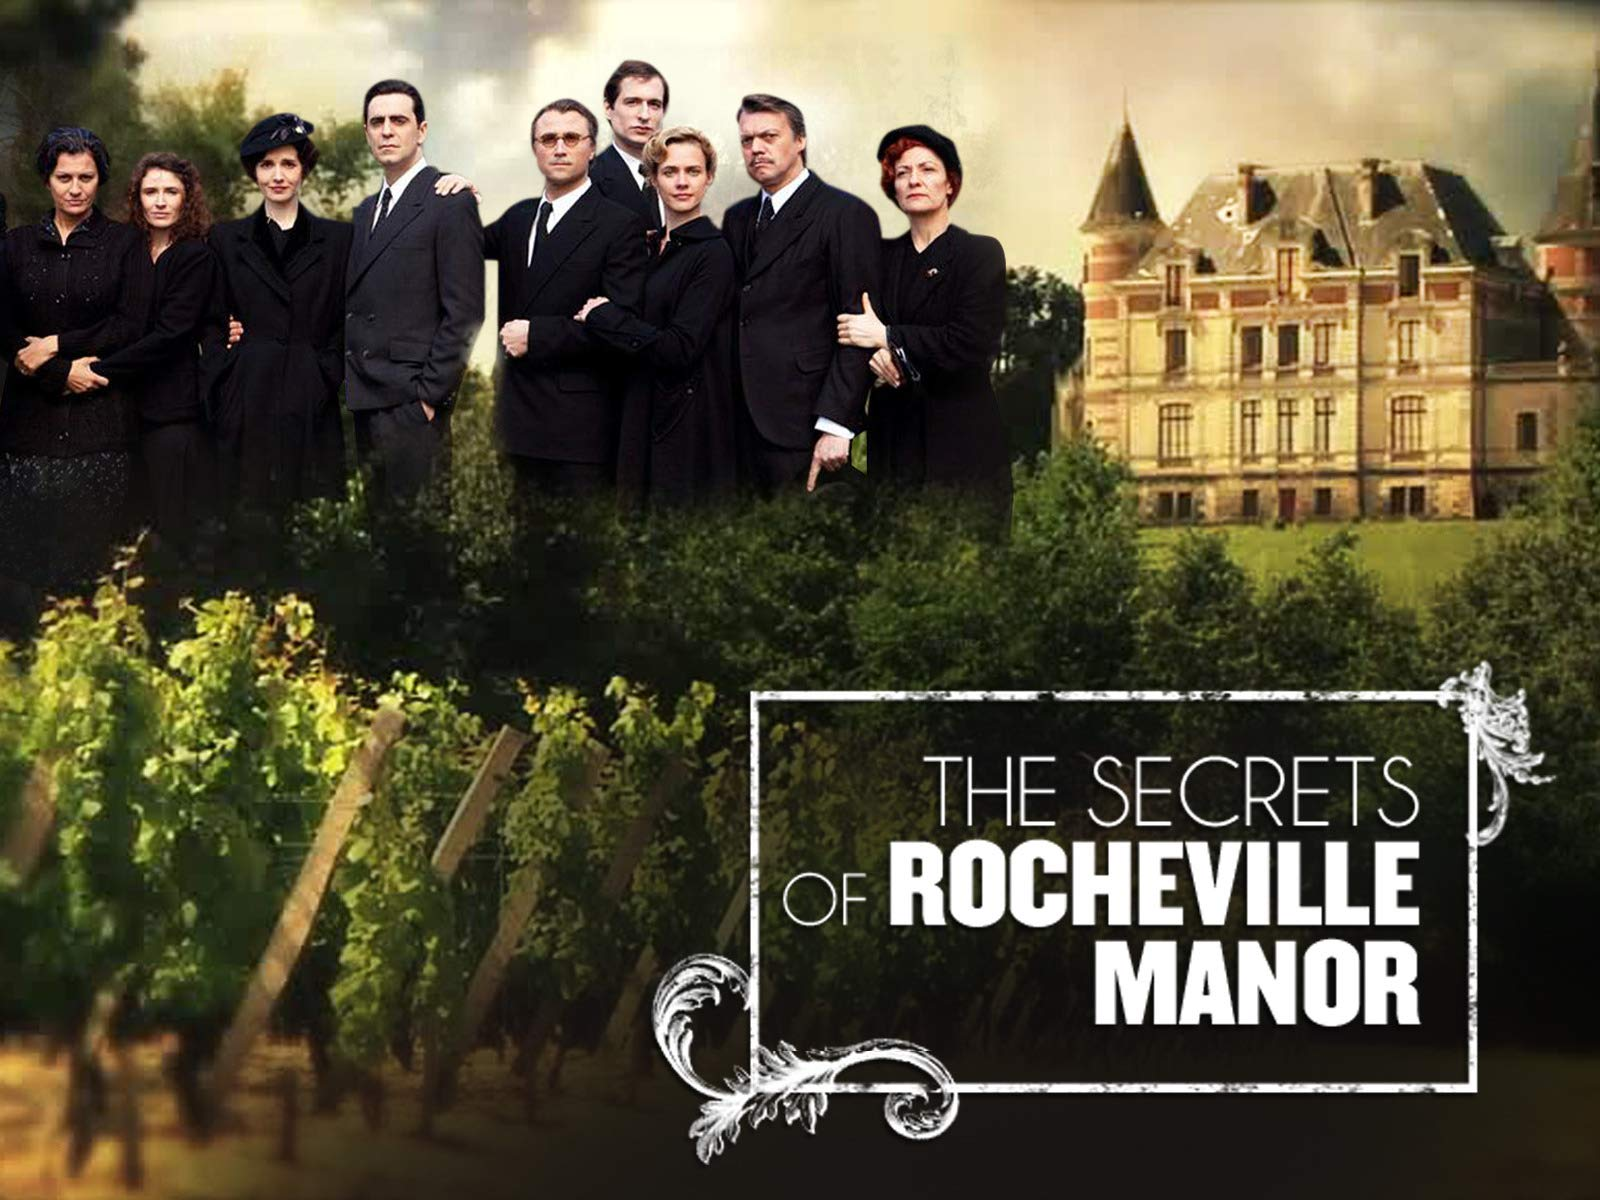 The Secrets of Rocheville Manor